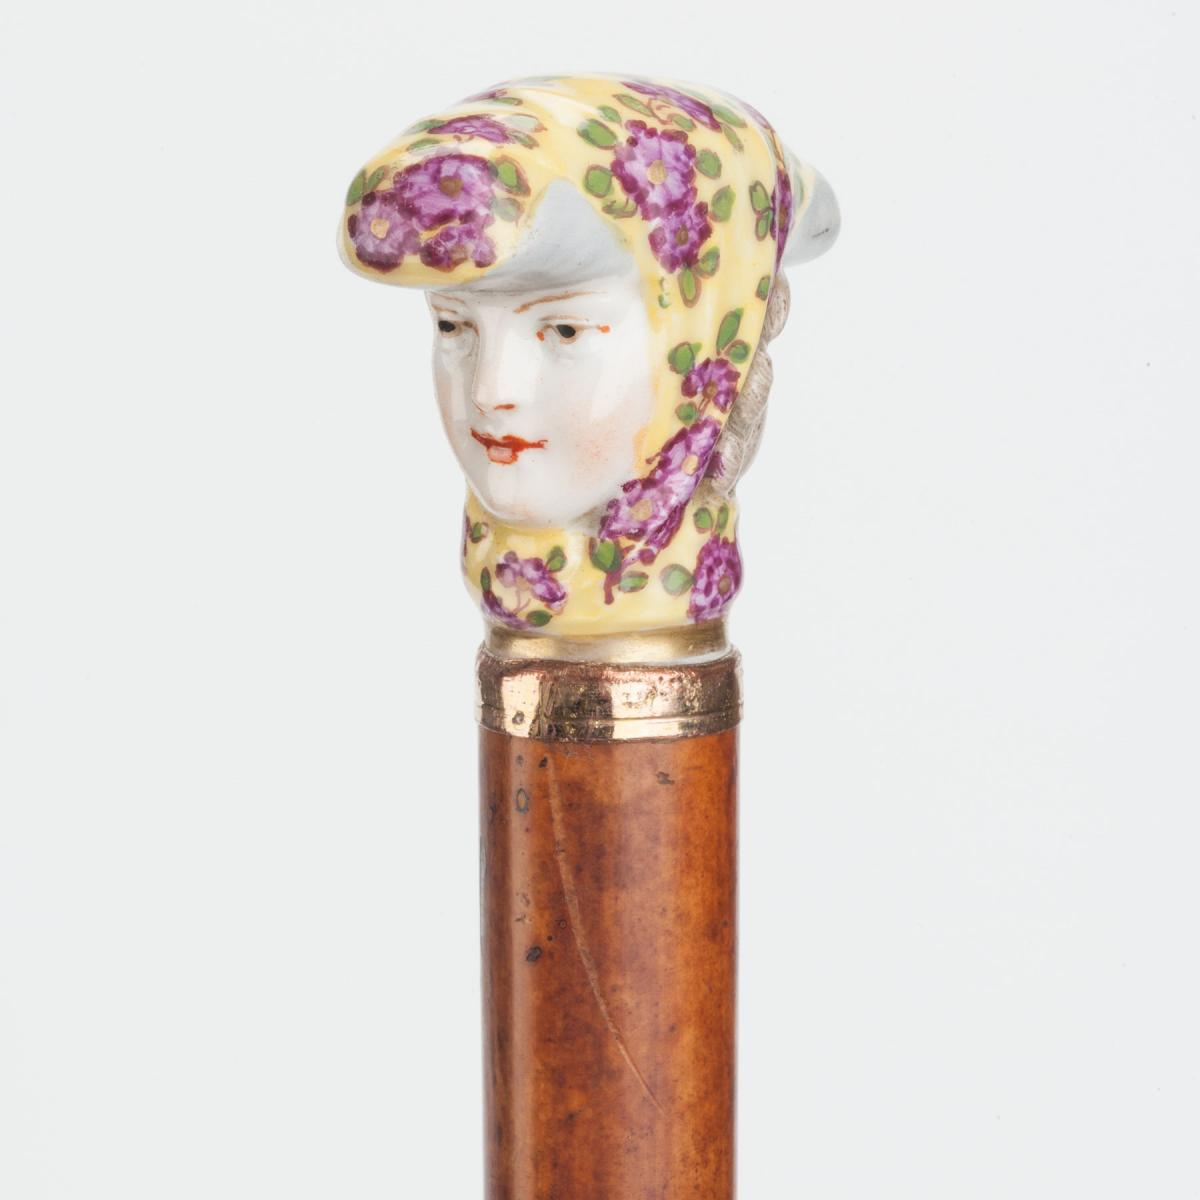 Lady's Head Cane